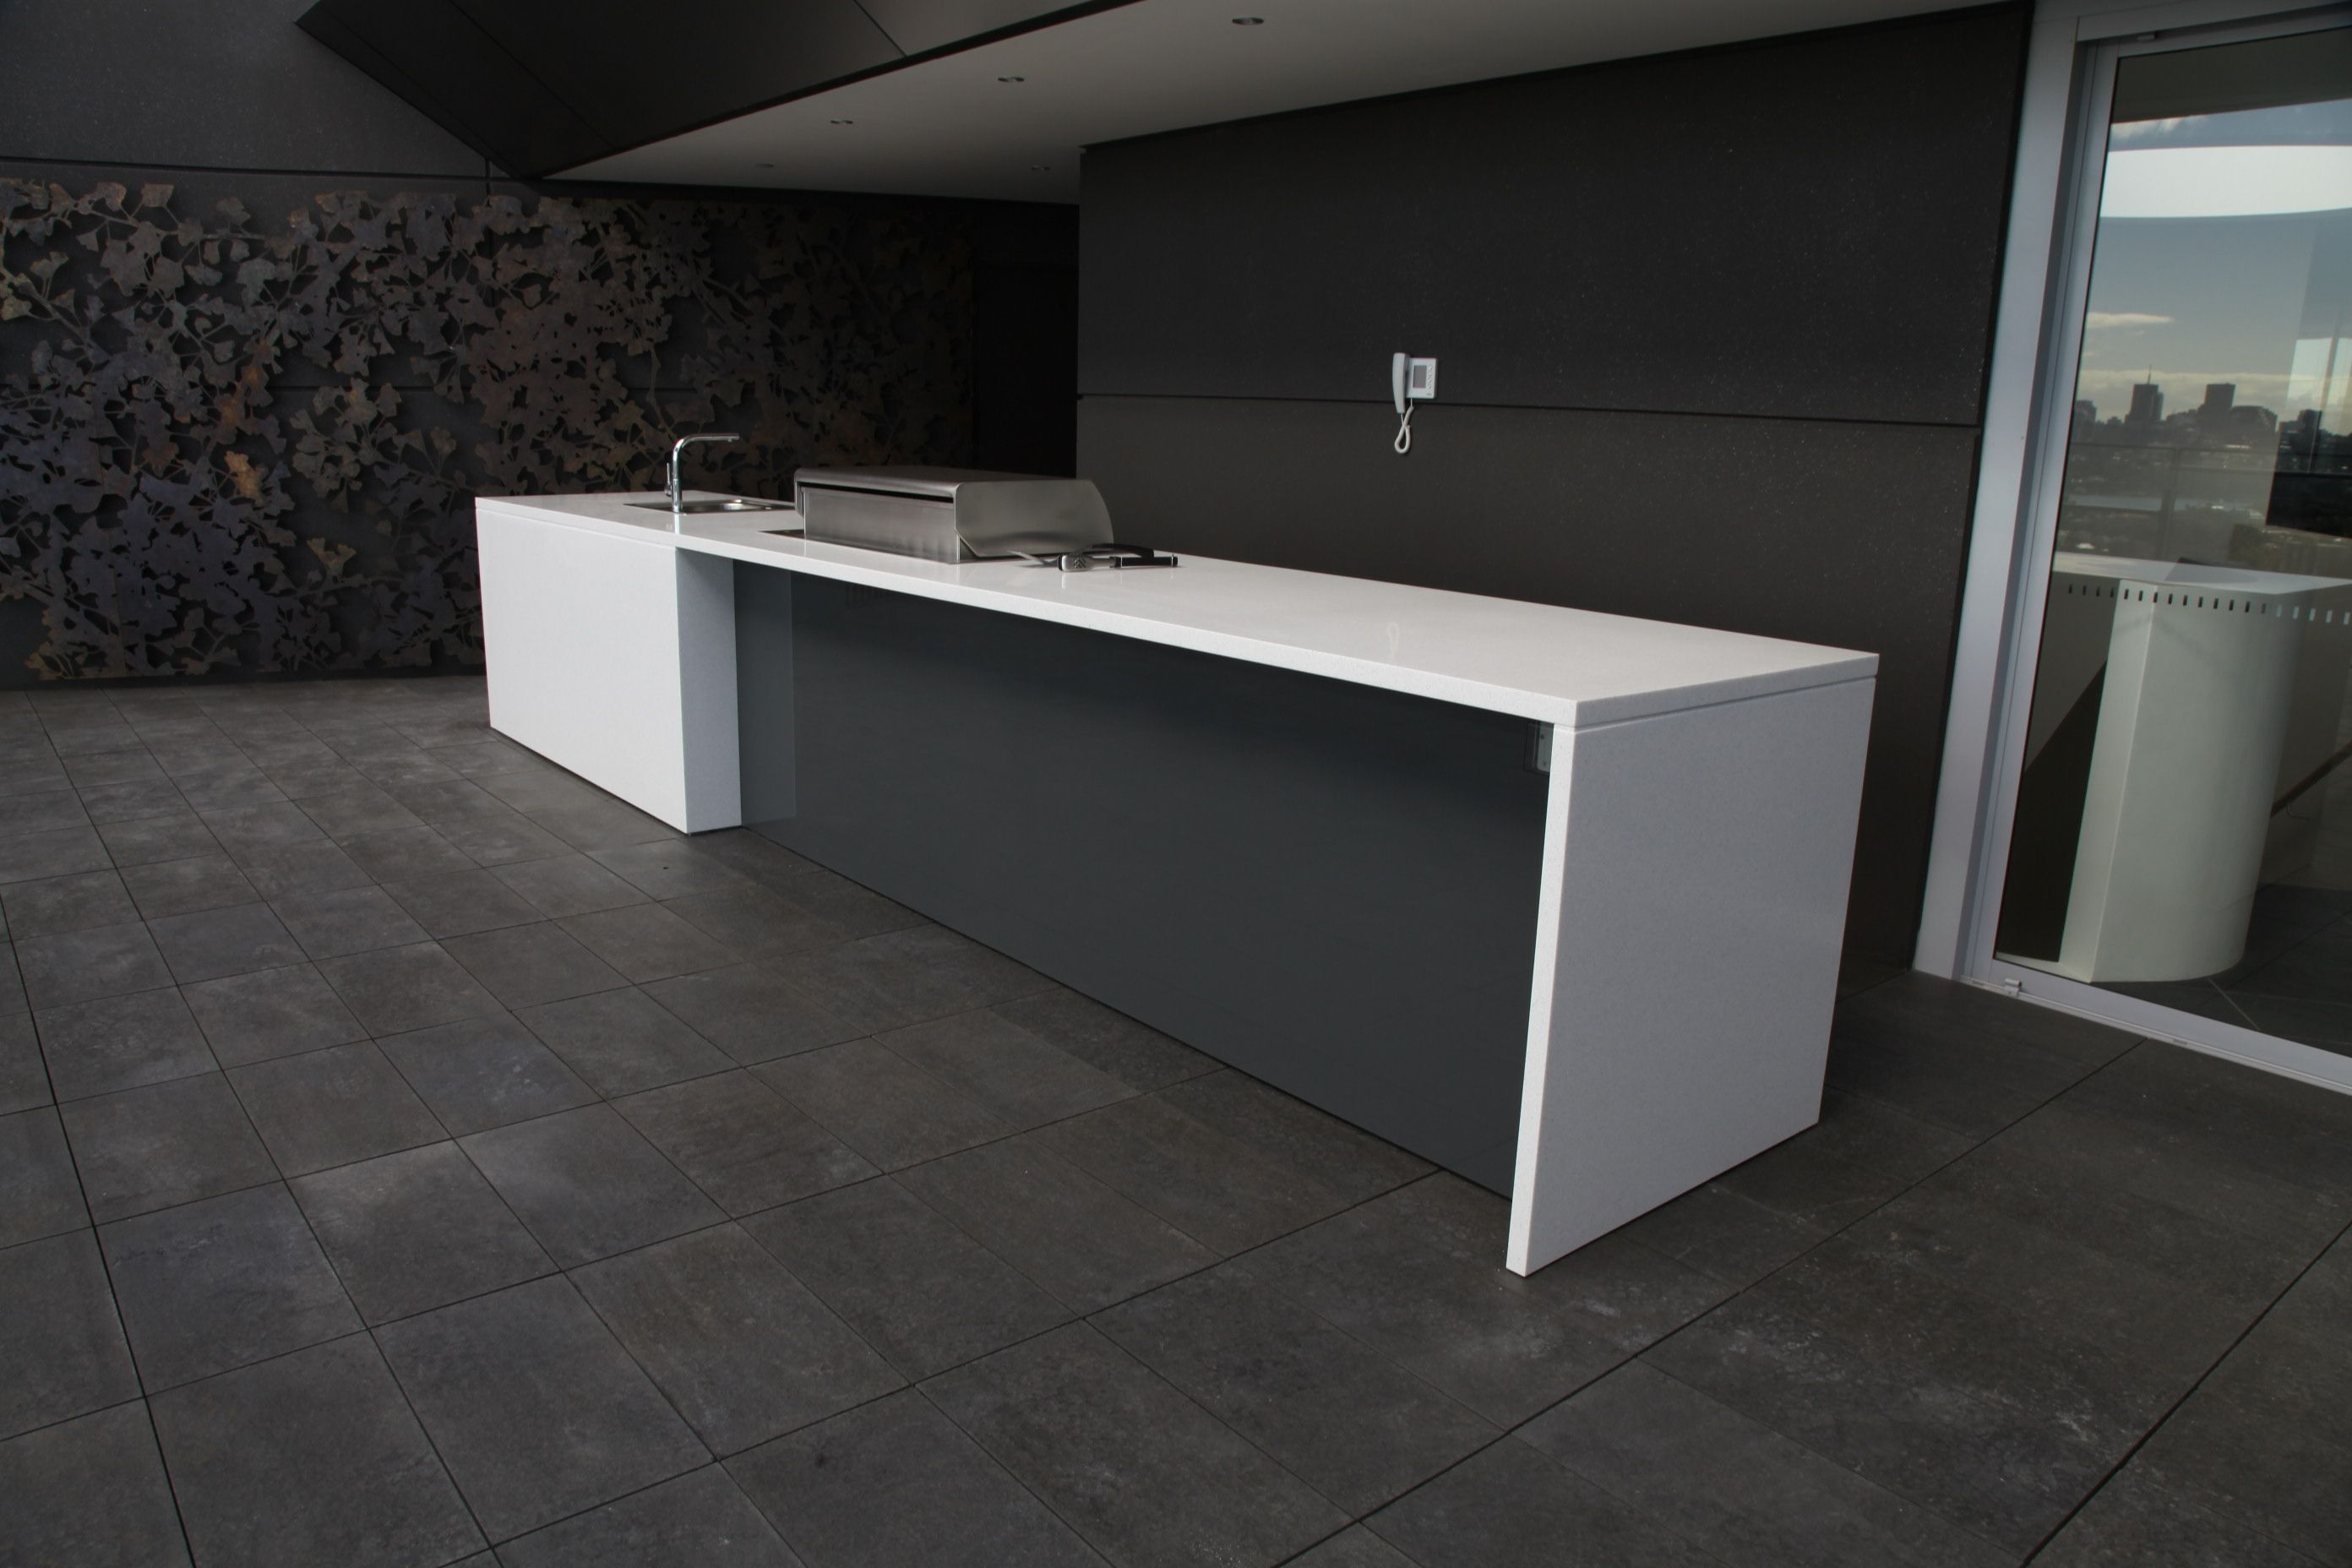 Tavolo Corian ~ Corian kitchen benchtop with waterfall edges for a slick look